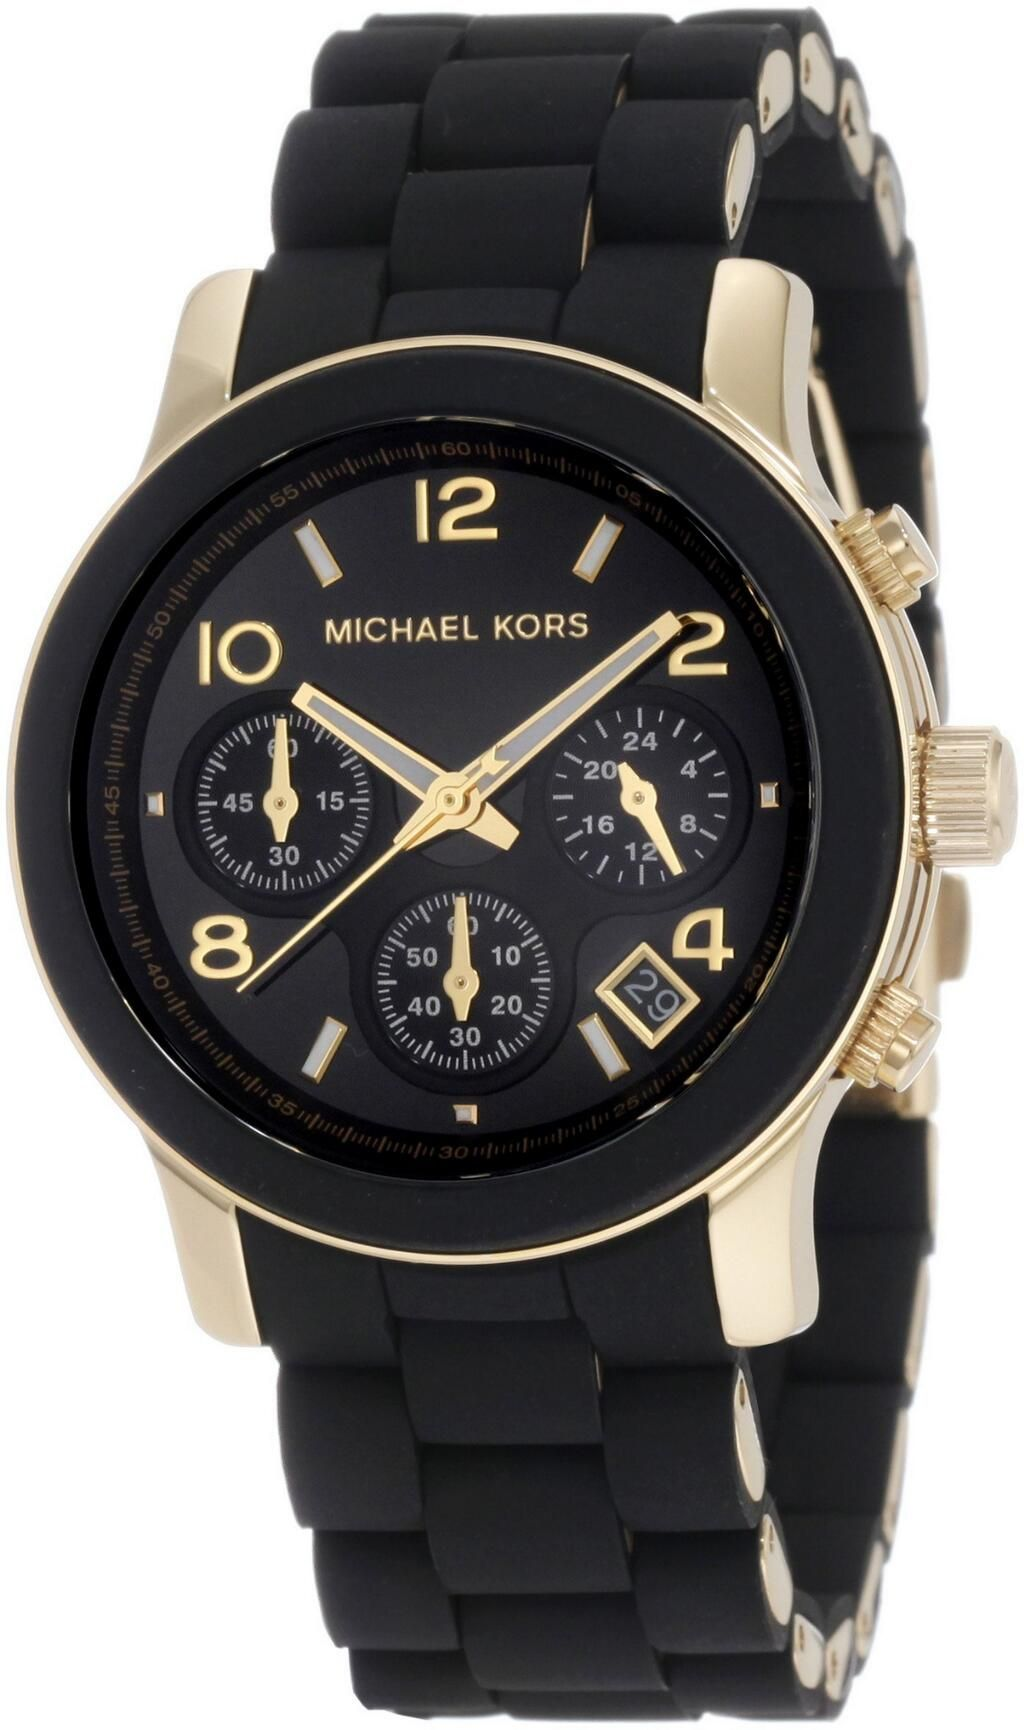 Michael Kors Quartz, Black Dial with Black Goldtone Bracelet - Womens Watch  MK5191 fashion watches. underpriced and luxurious.Solidly built. 246bc9ac07